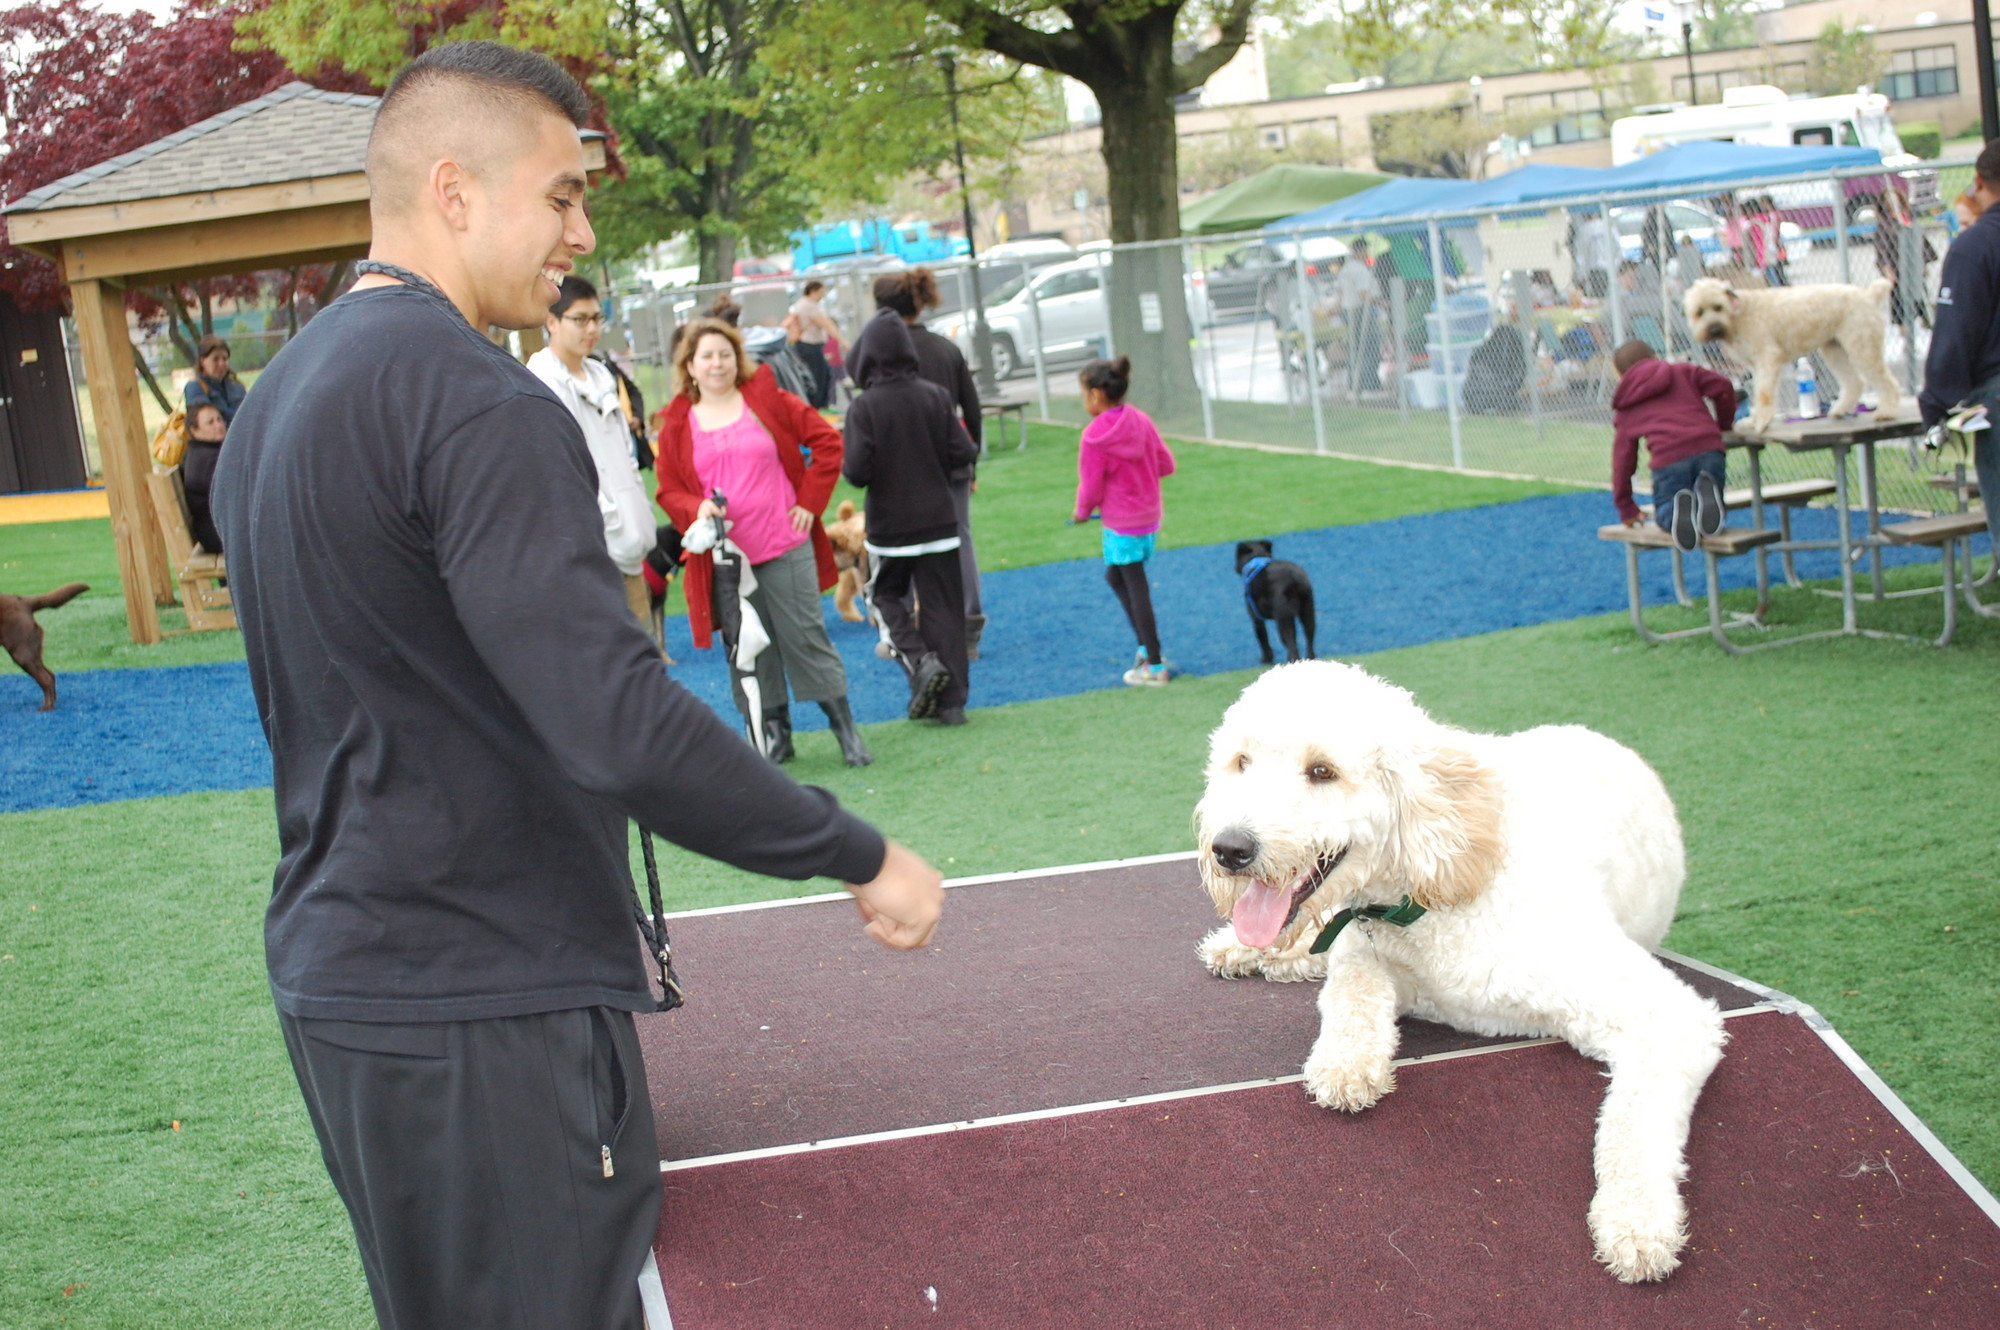 Claudio Barrios and his dog, Midas, enjoyed the dog park at the first anniversary celebration on May 11.